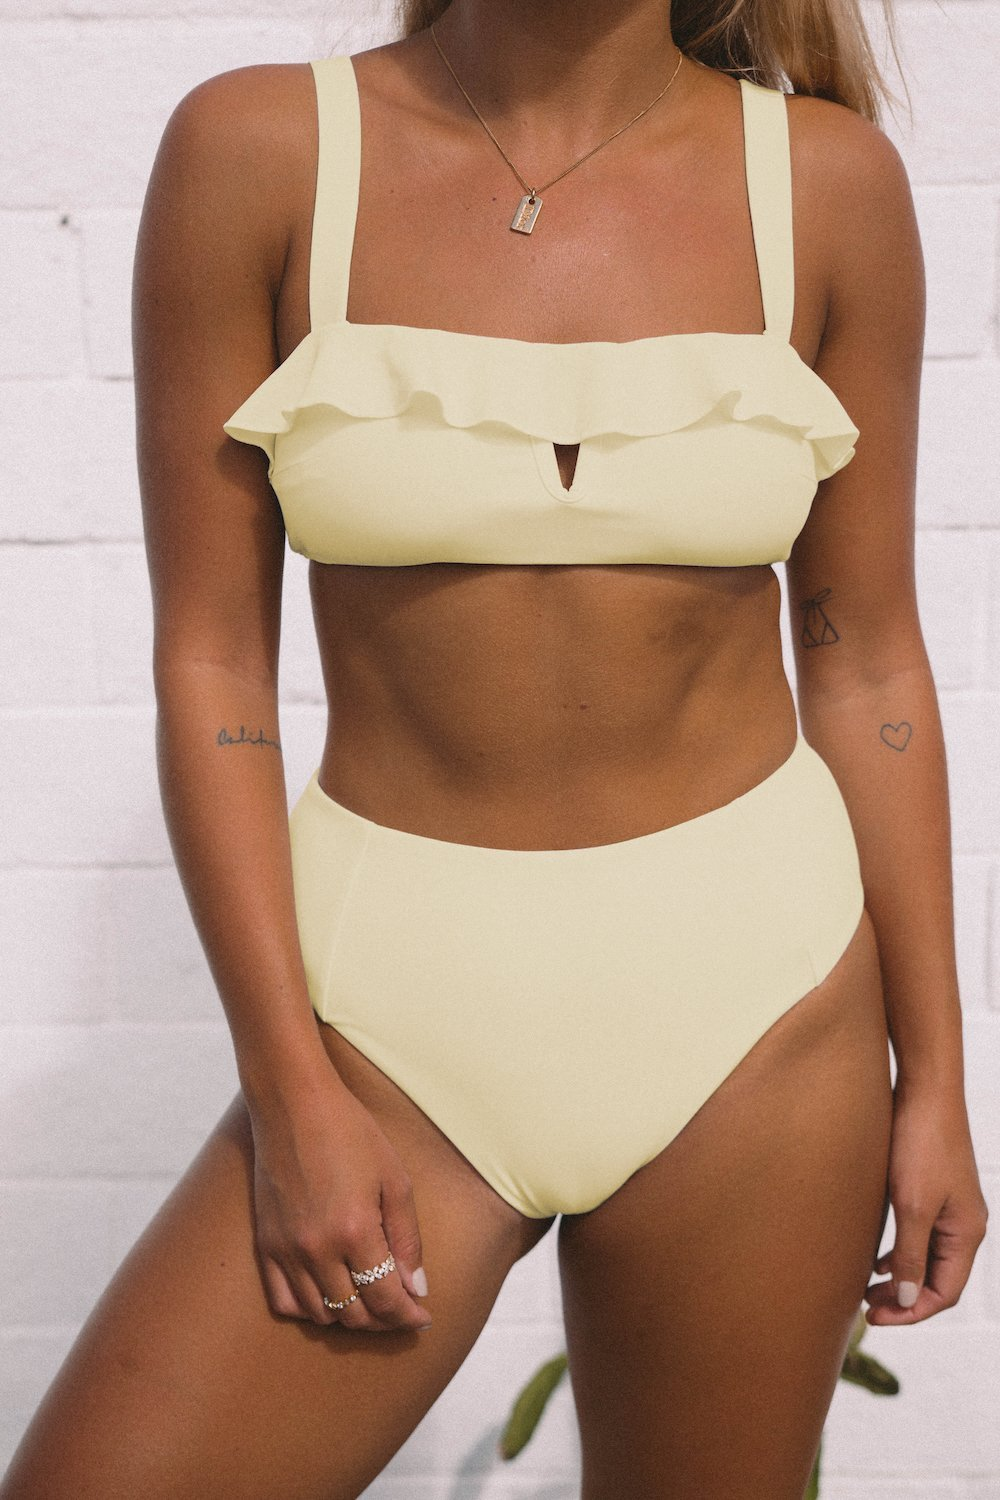 Ete Swimwear Ete X Matilda - Santa Cruz Bottoms (Sunset) - Nomads Cove